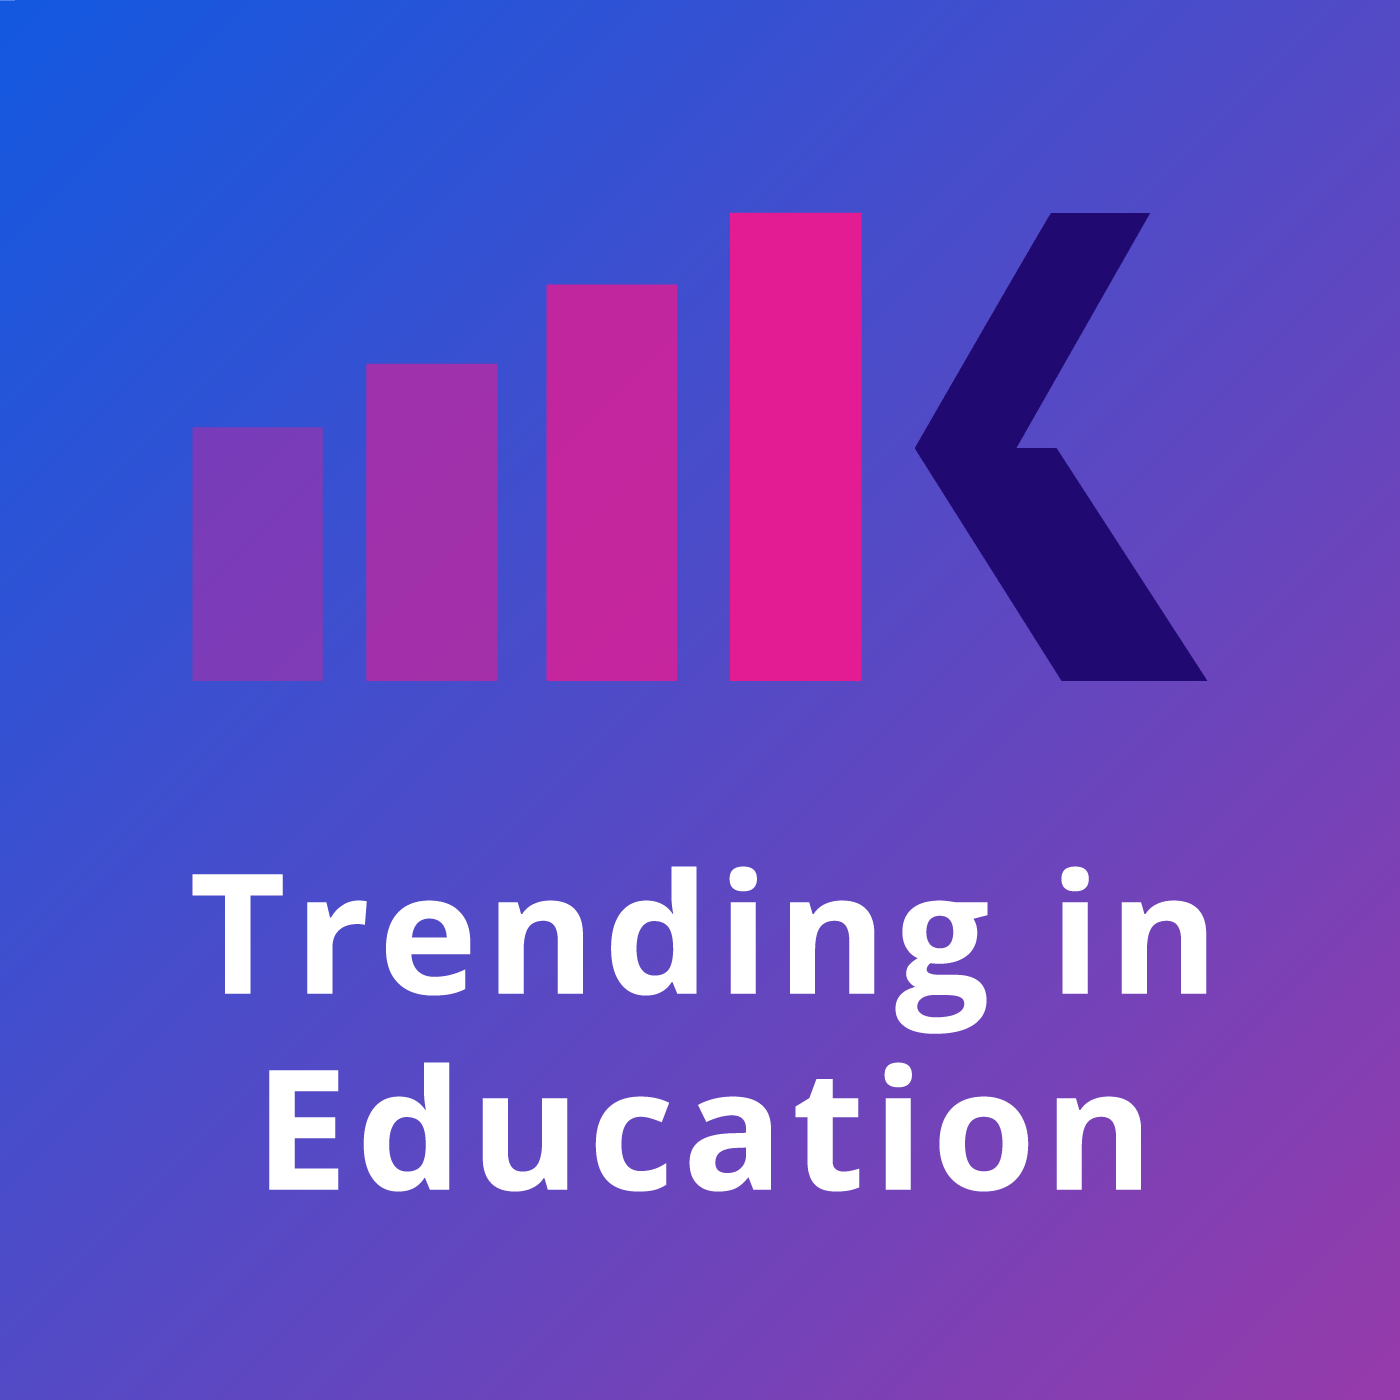 Language Learning and the E-Learning Landscape with Katie Nielson, Chief Education Officer, Voxy.com - Trending In Education - Extra